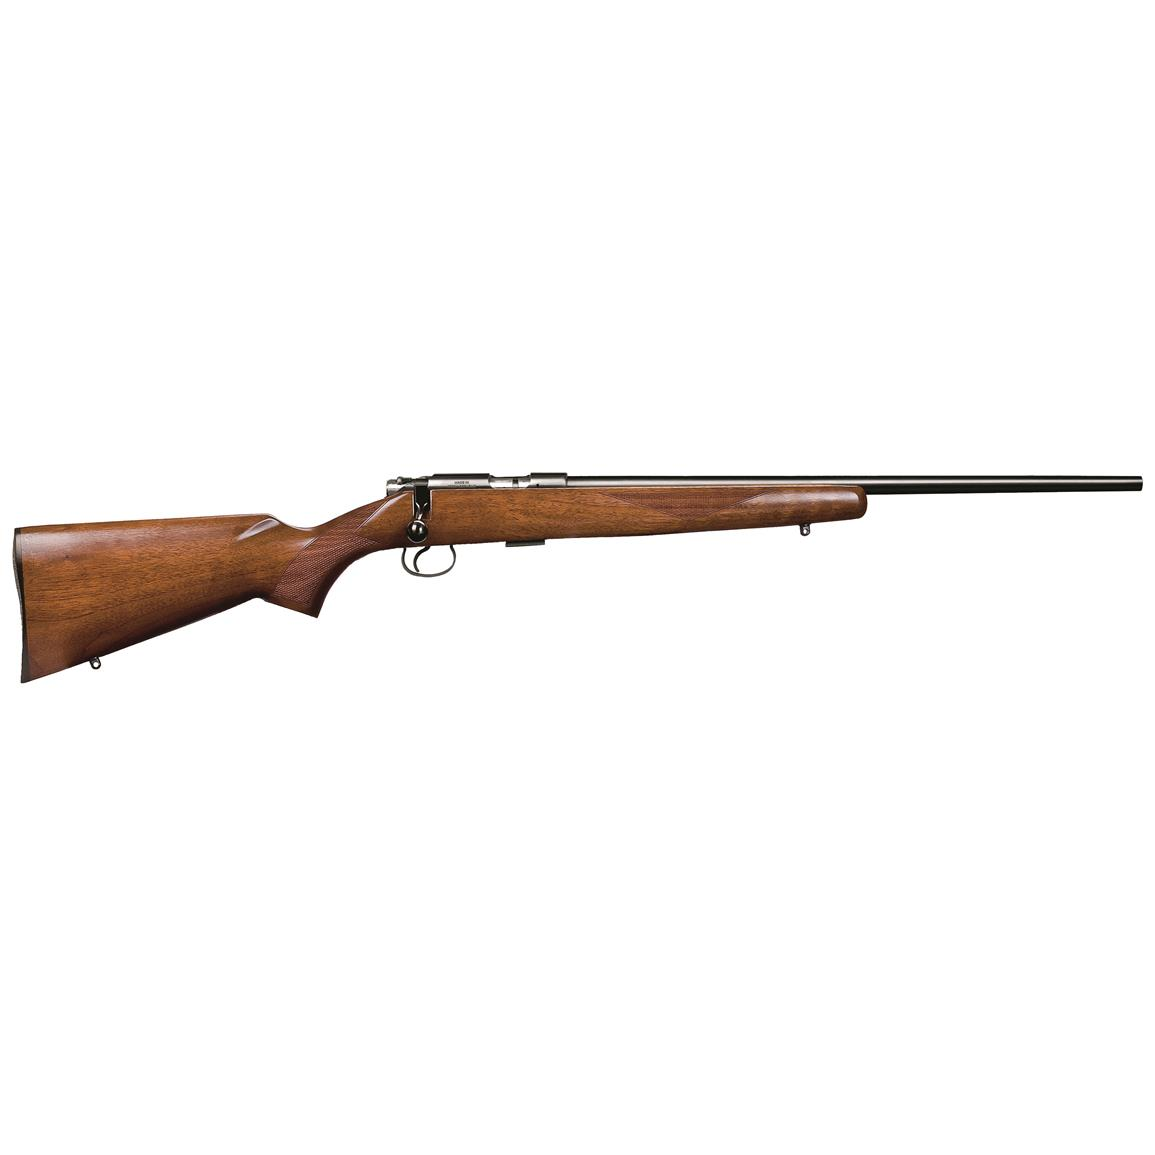 "CZ-USA 455 American, Bolt Action, .22 WMR, Rimfire, 20.5"" Barrel, 5+1 Rounds"